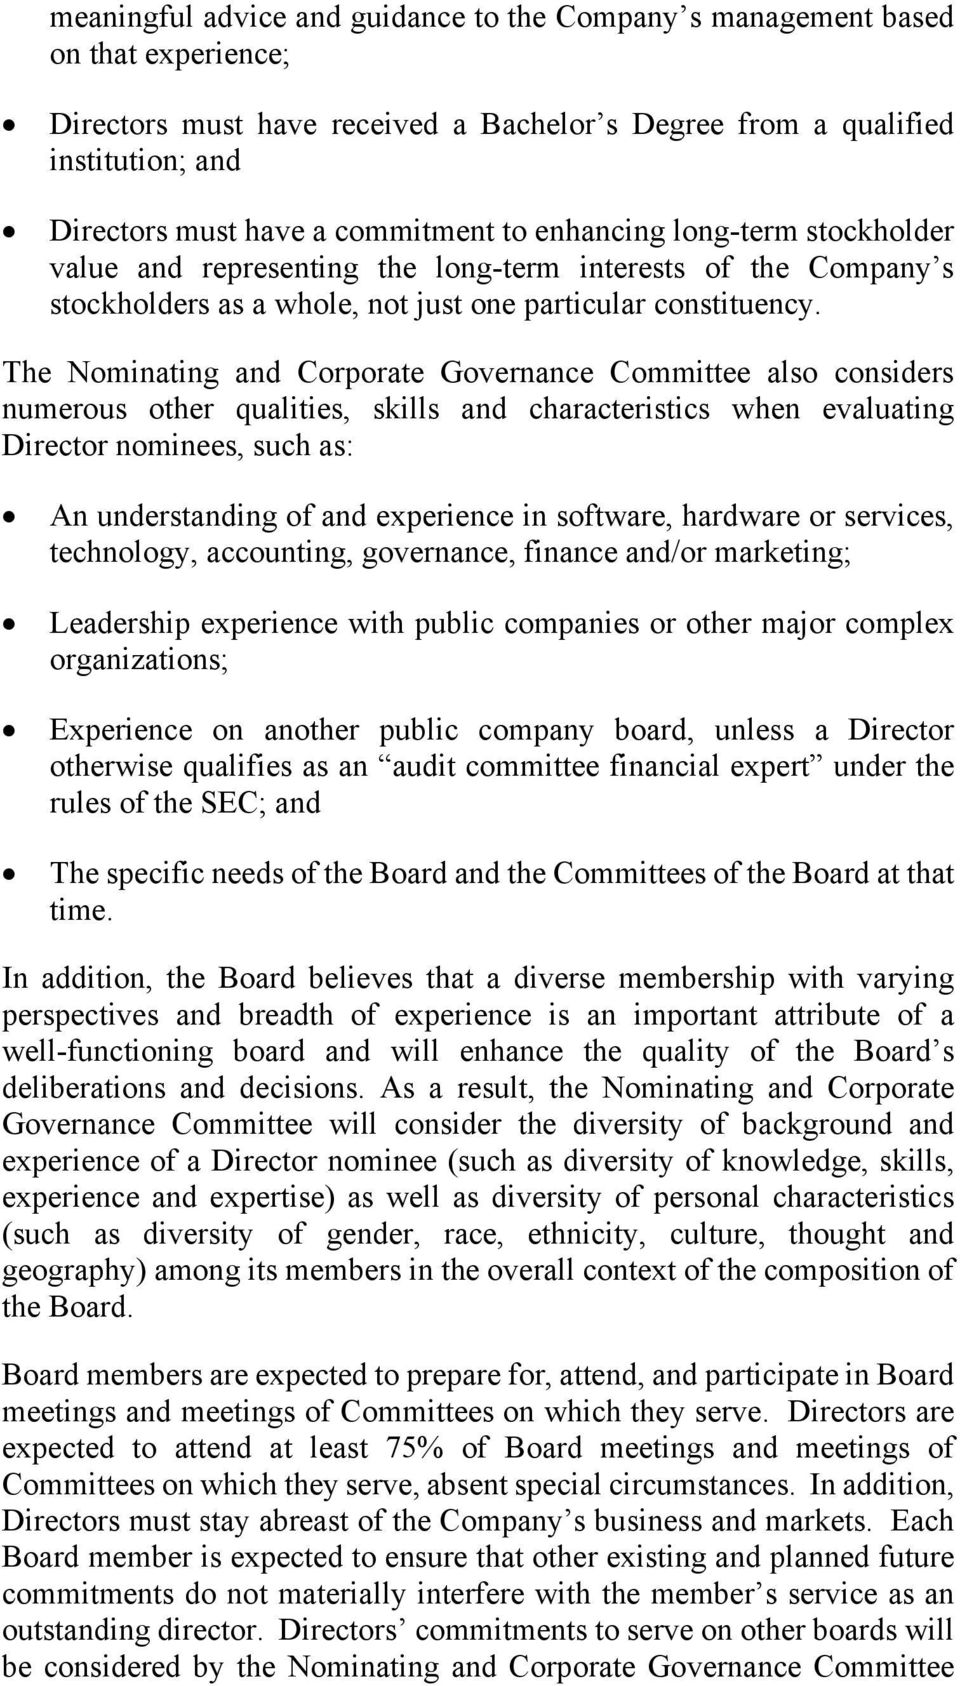 The Nominating and Corporate Governance Committee also considers numerous other qualities, skills and characteristics when evaluating Director nominees, such as: An understanding of and experience in